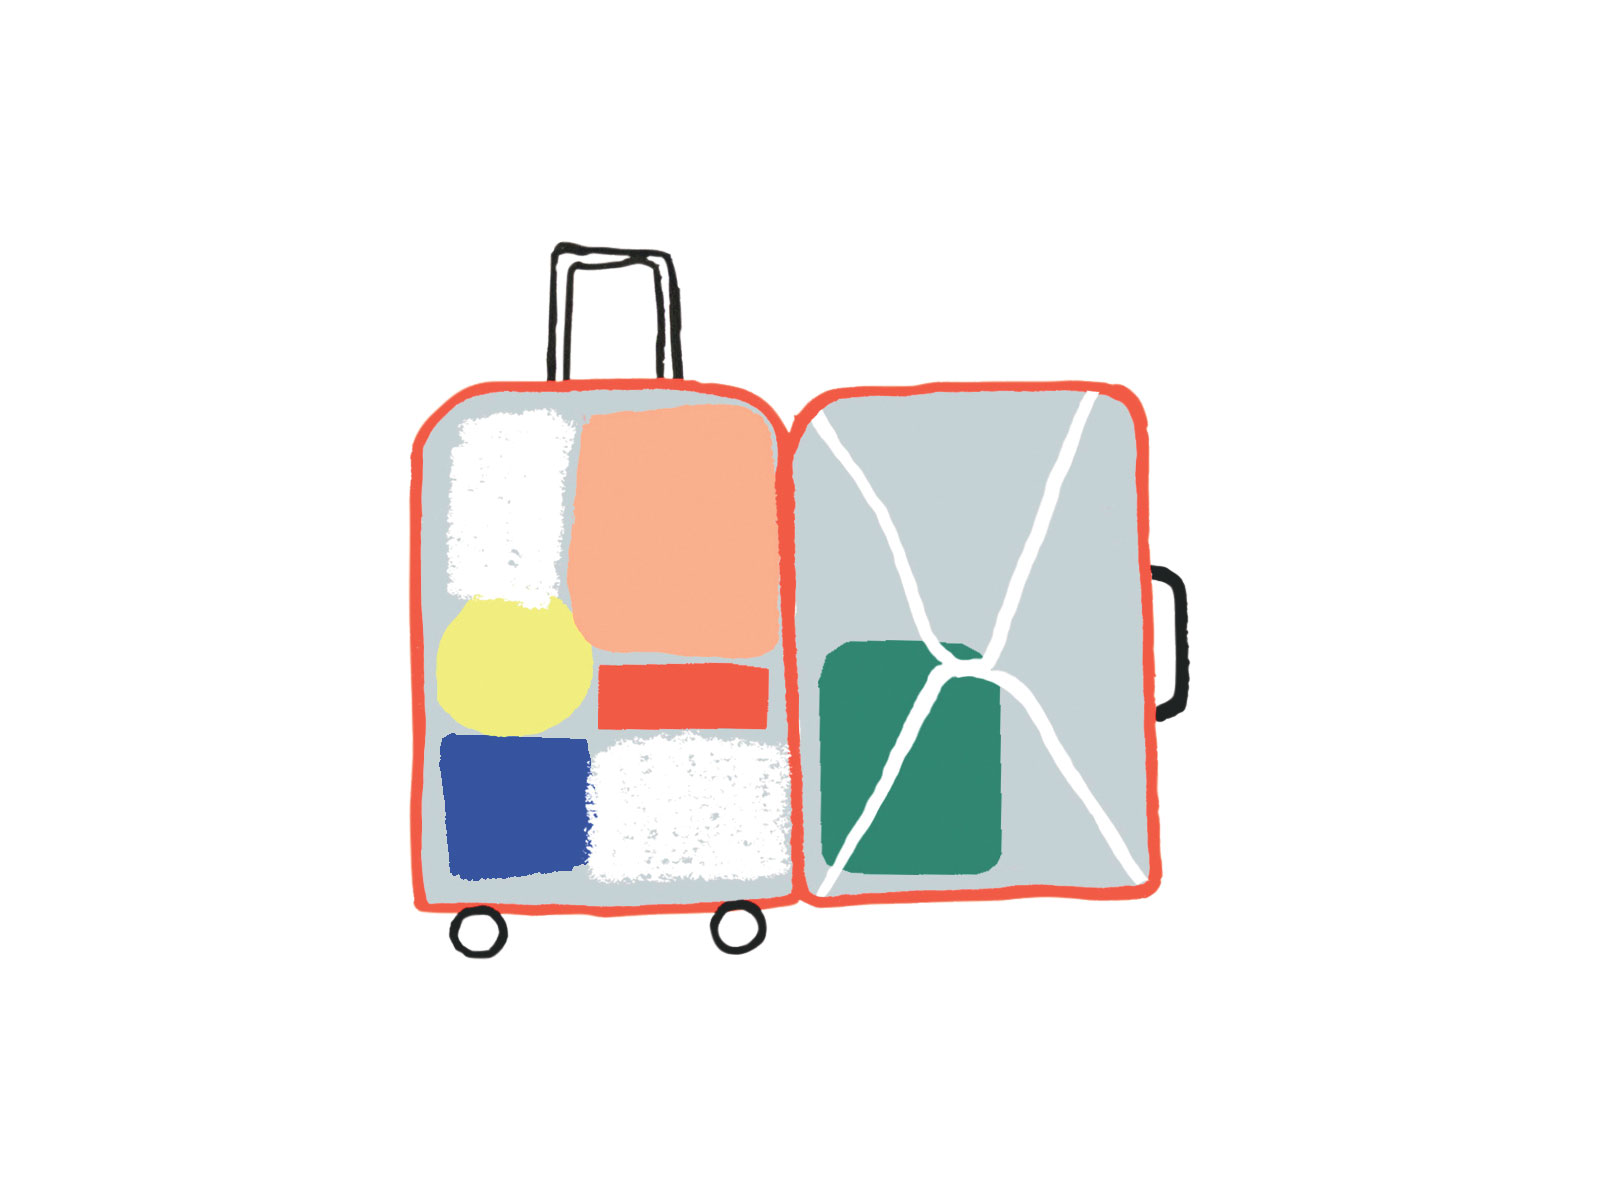 Illo: Packed carry-on suitcase